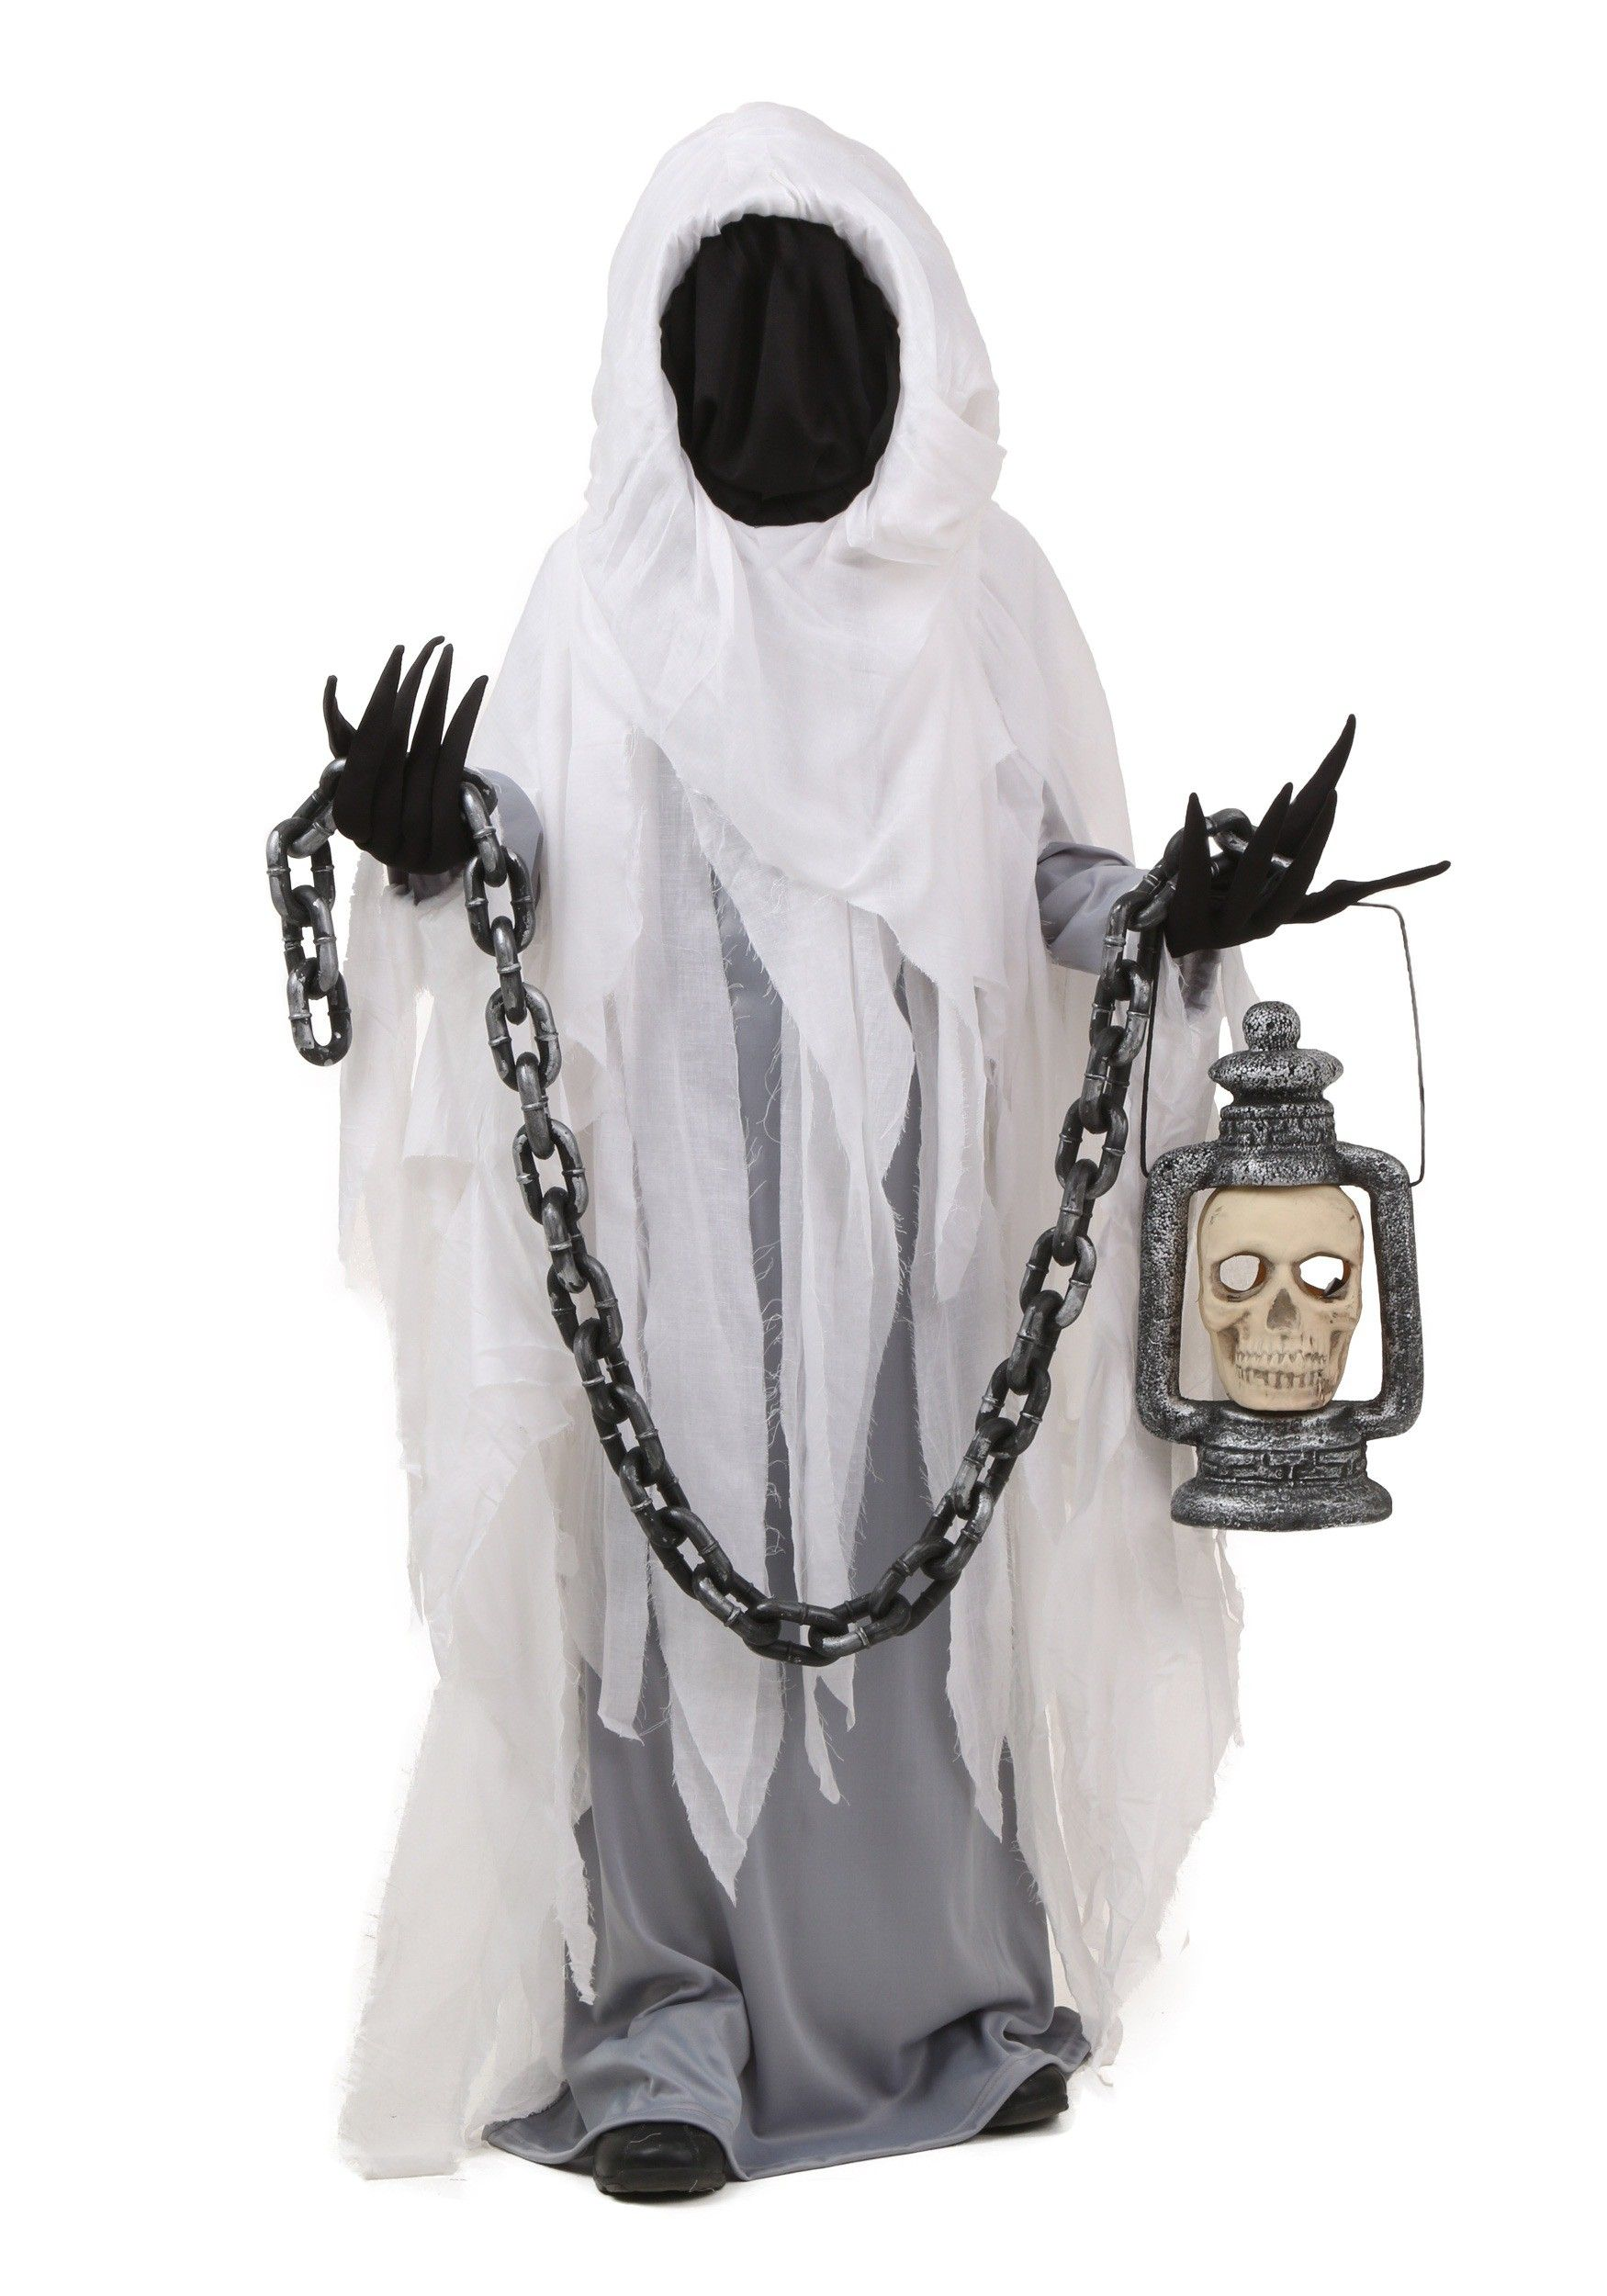 This Child Spooky Ghost Costume is bound to scare the